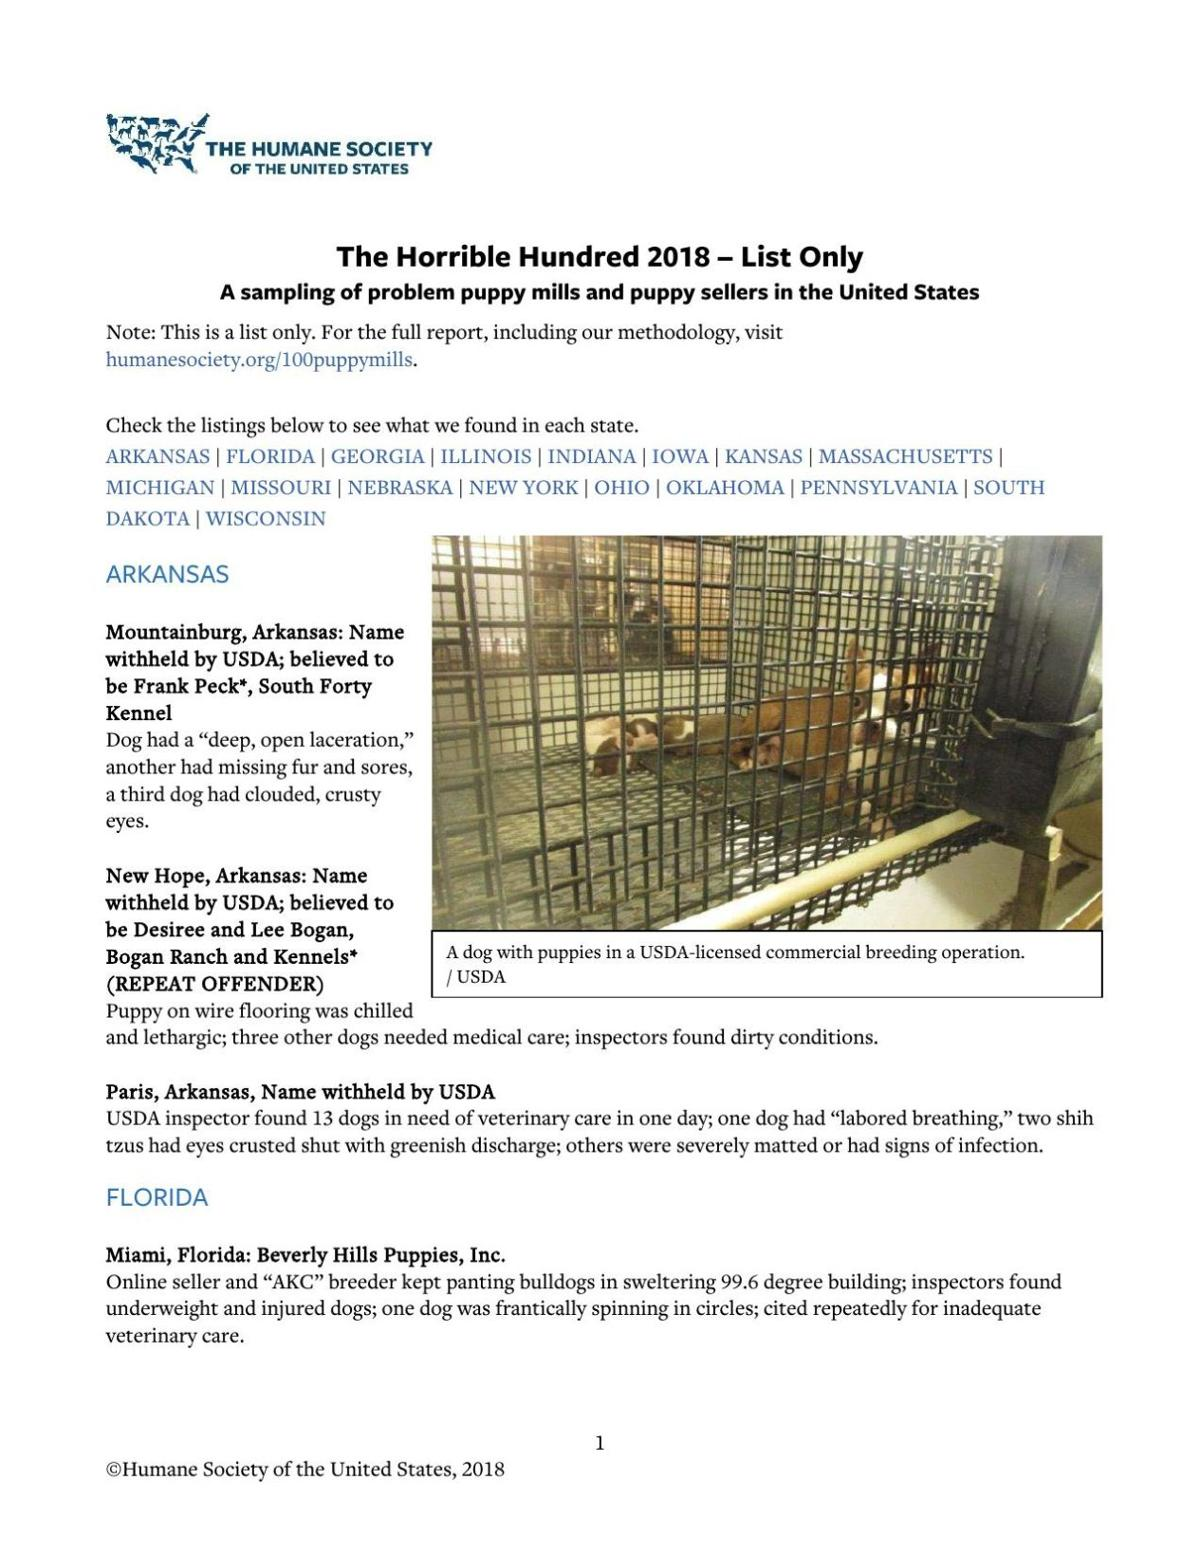 Horrible Hundred' list includes southeast Iowa animal